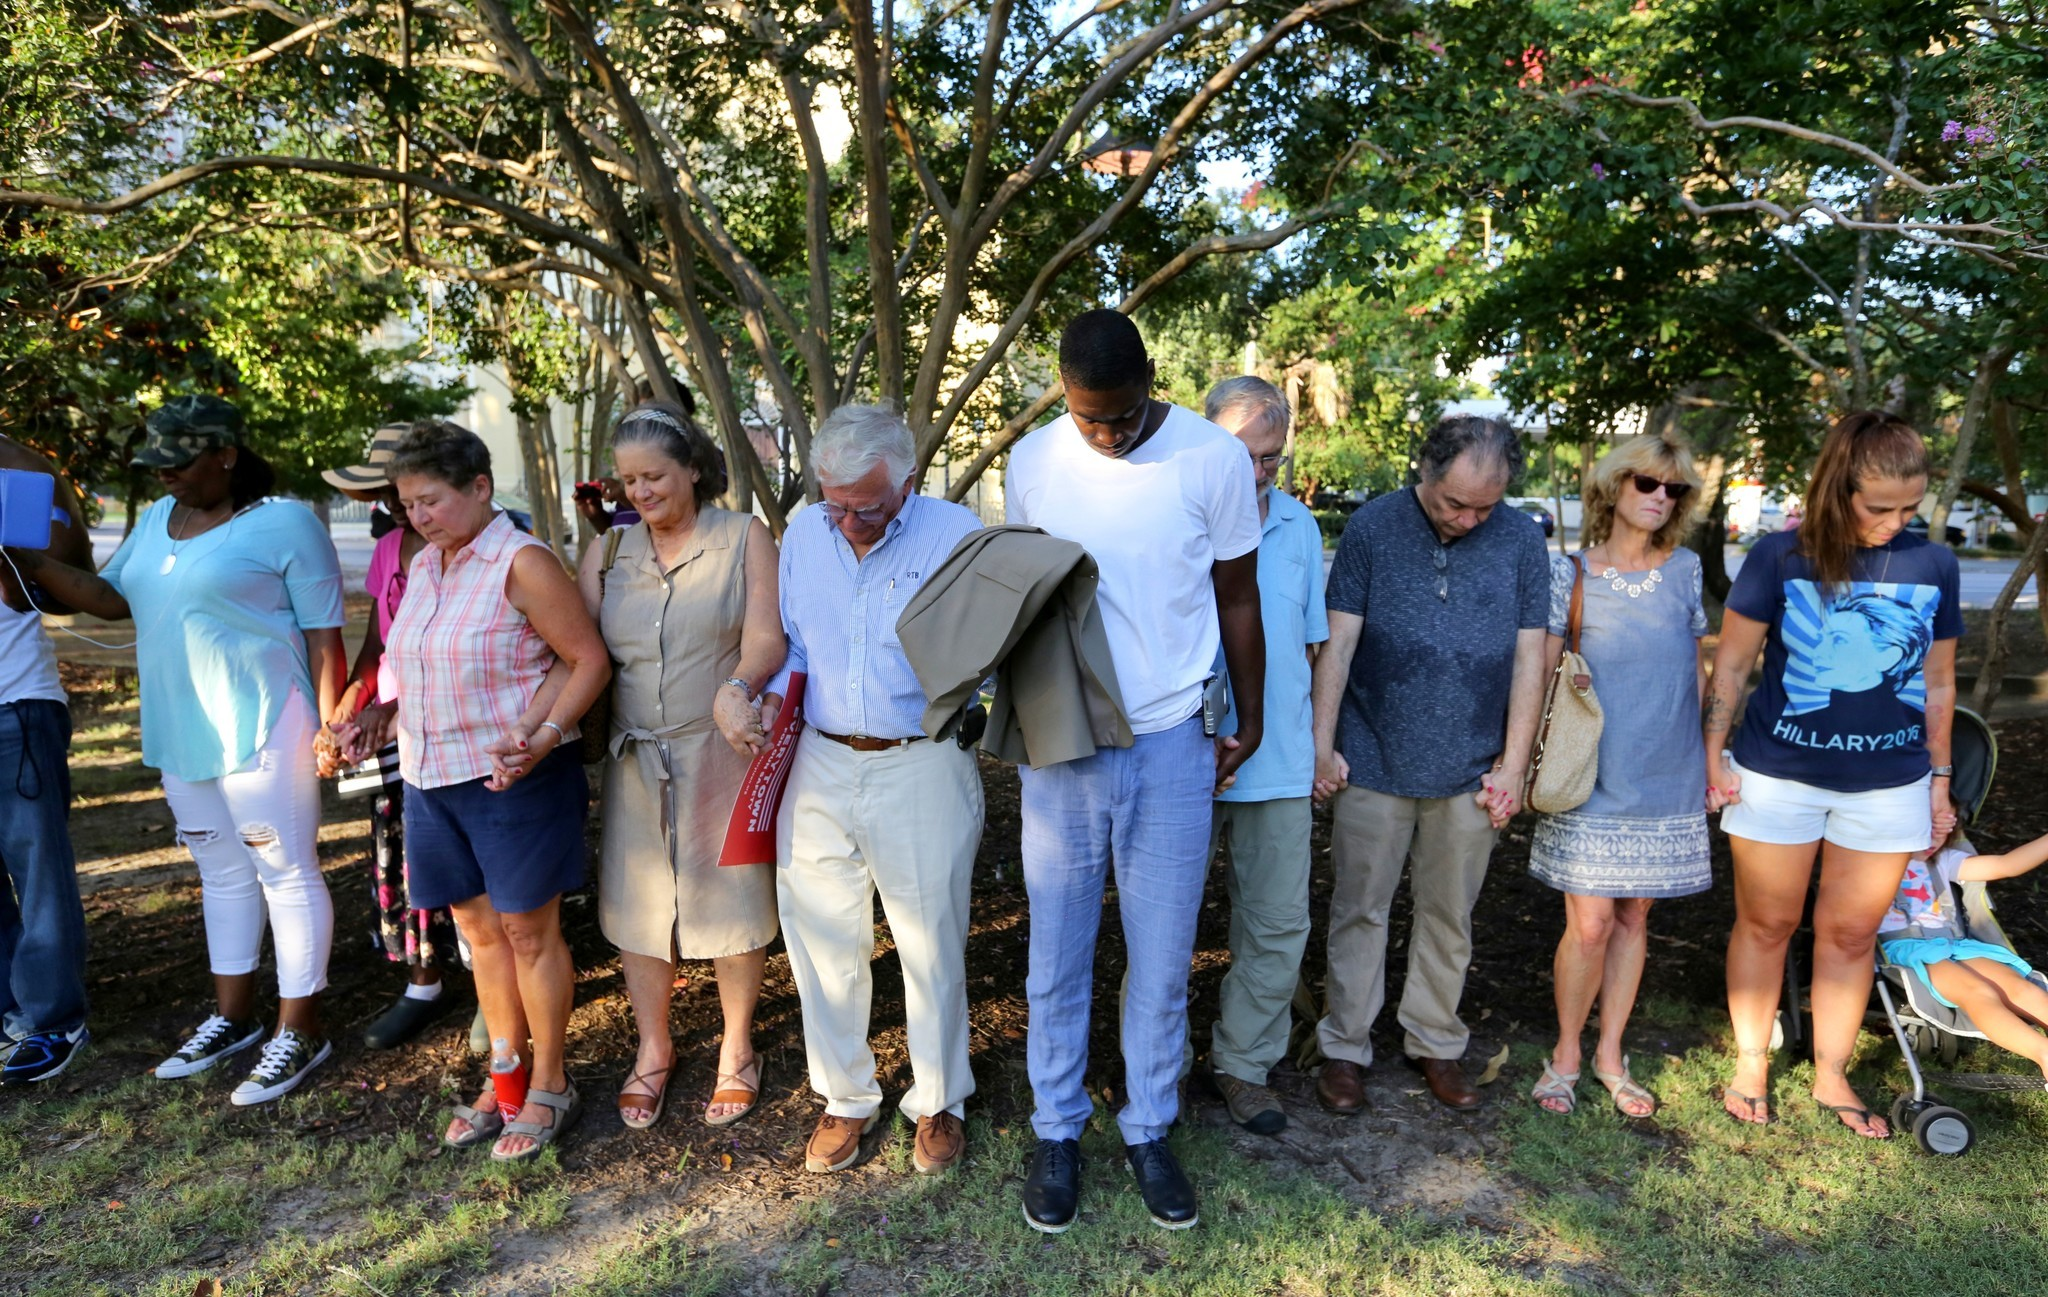 Residents pray at an anti-gun violence vigil this past July to honor those killed in the mass shooting at the Emanuel African Methodist Episcopal Church.